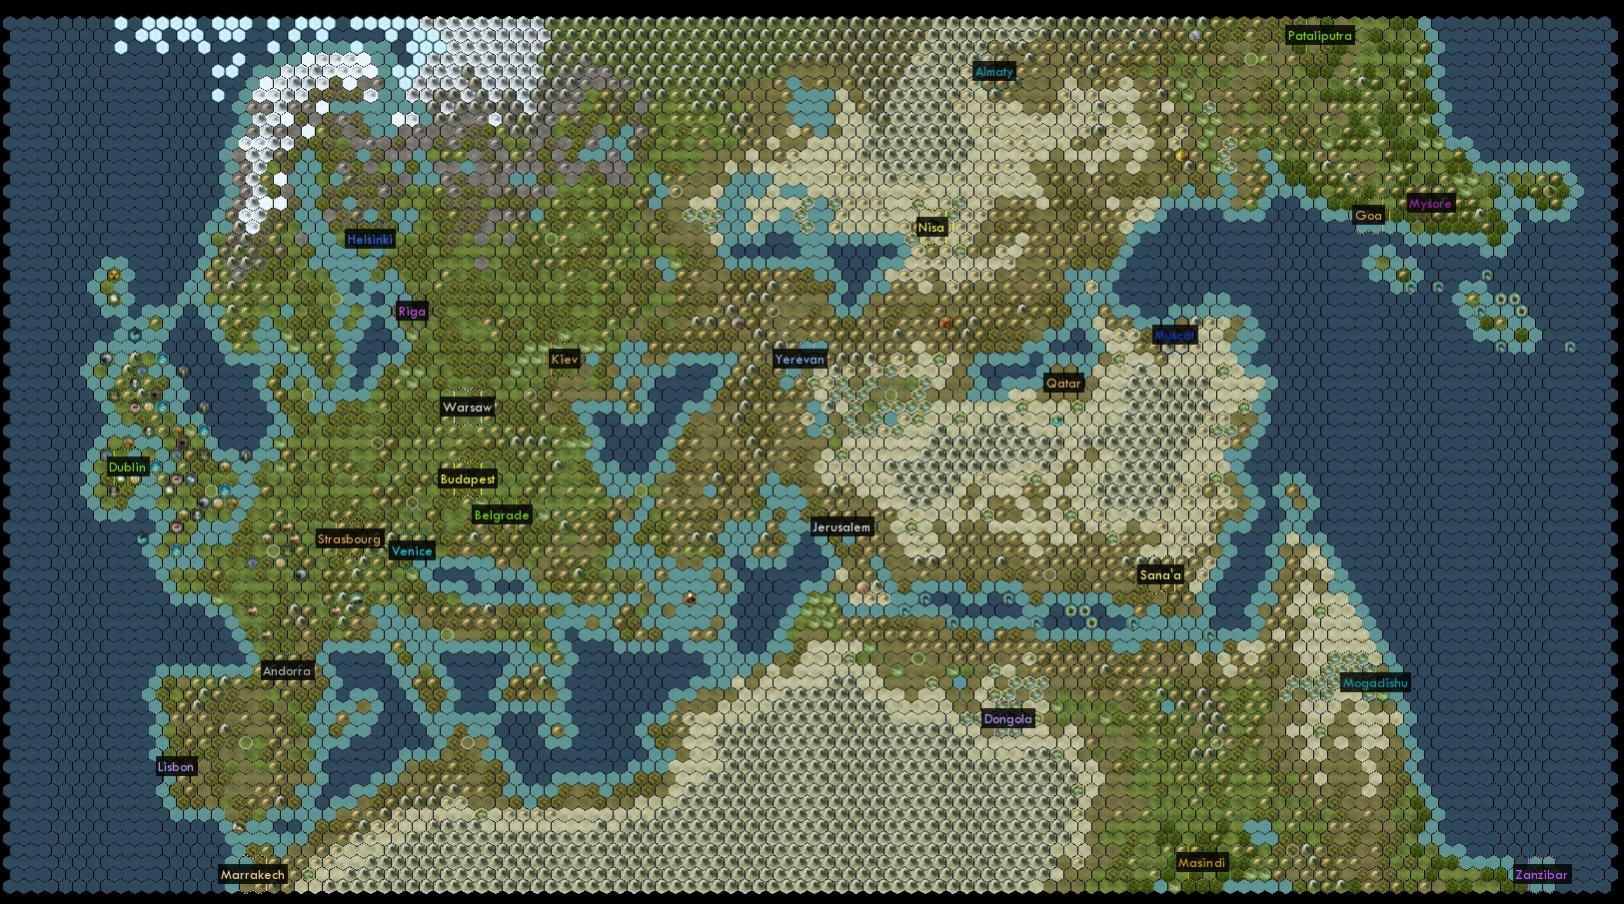 Rome Total War 2 Campaign Map What Areas Would You Like It To Cover